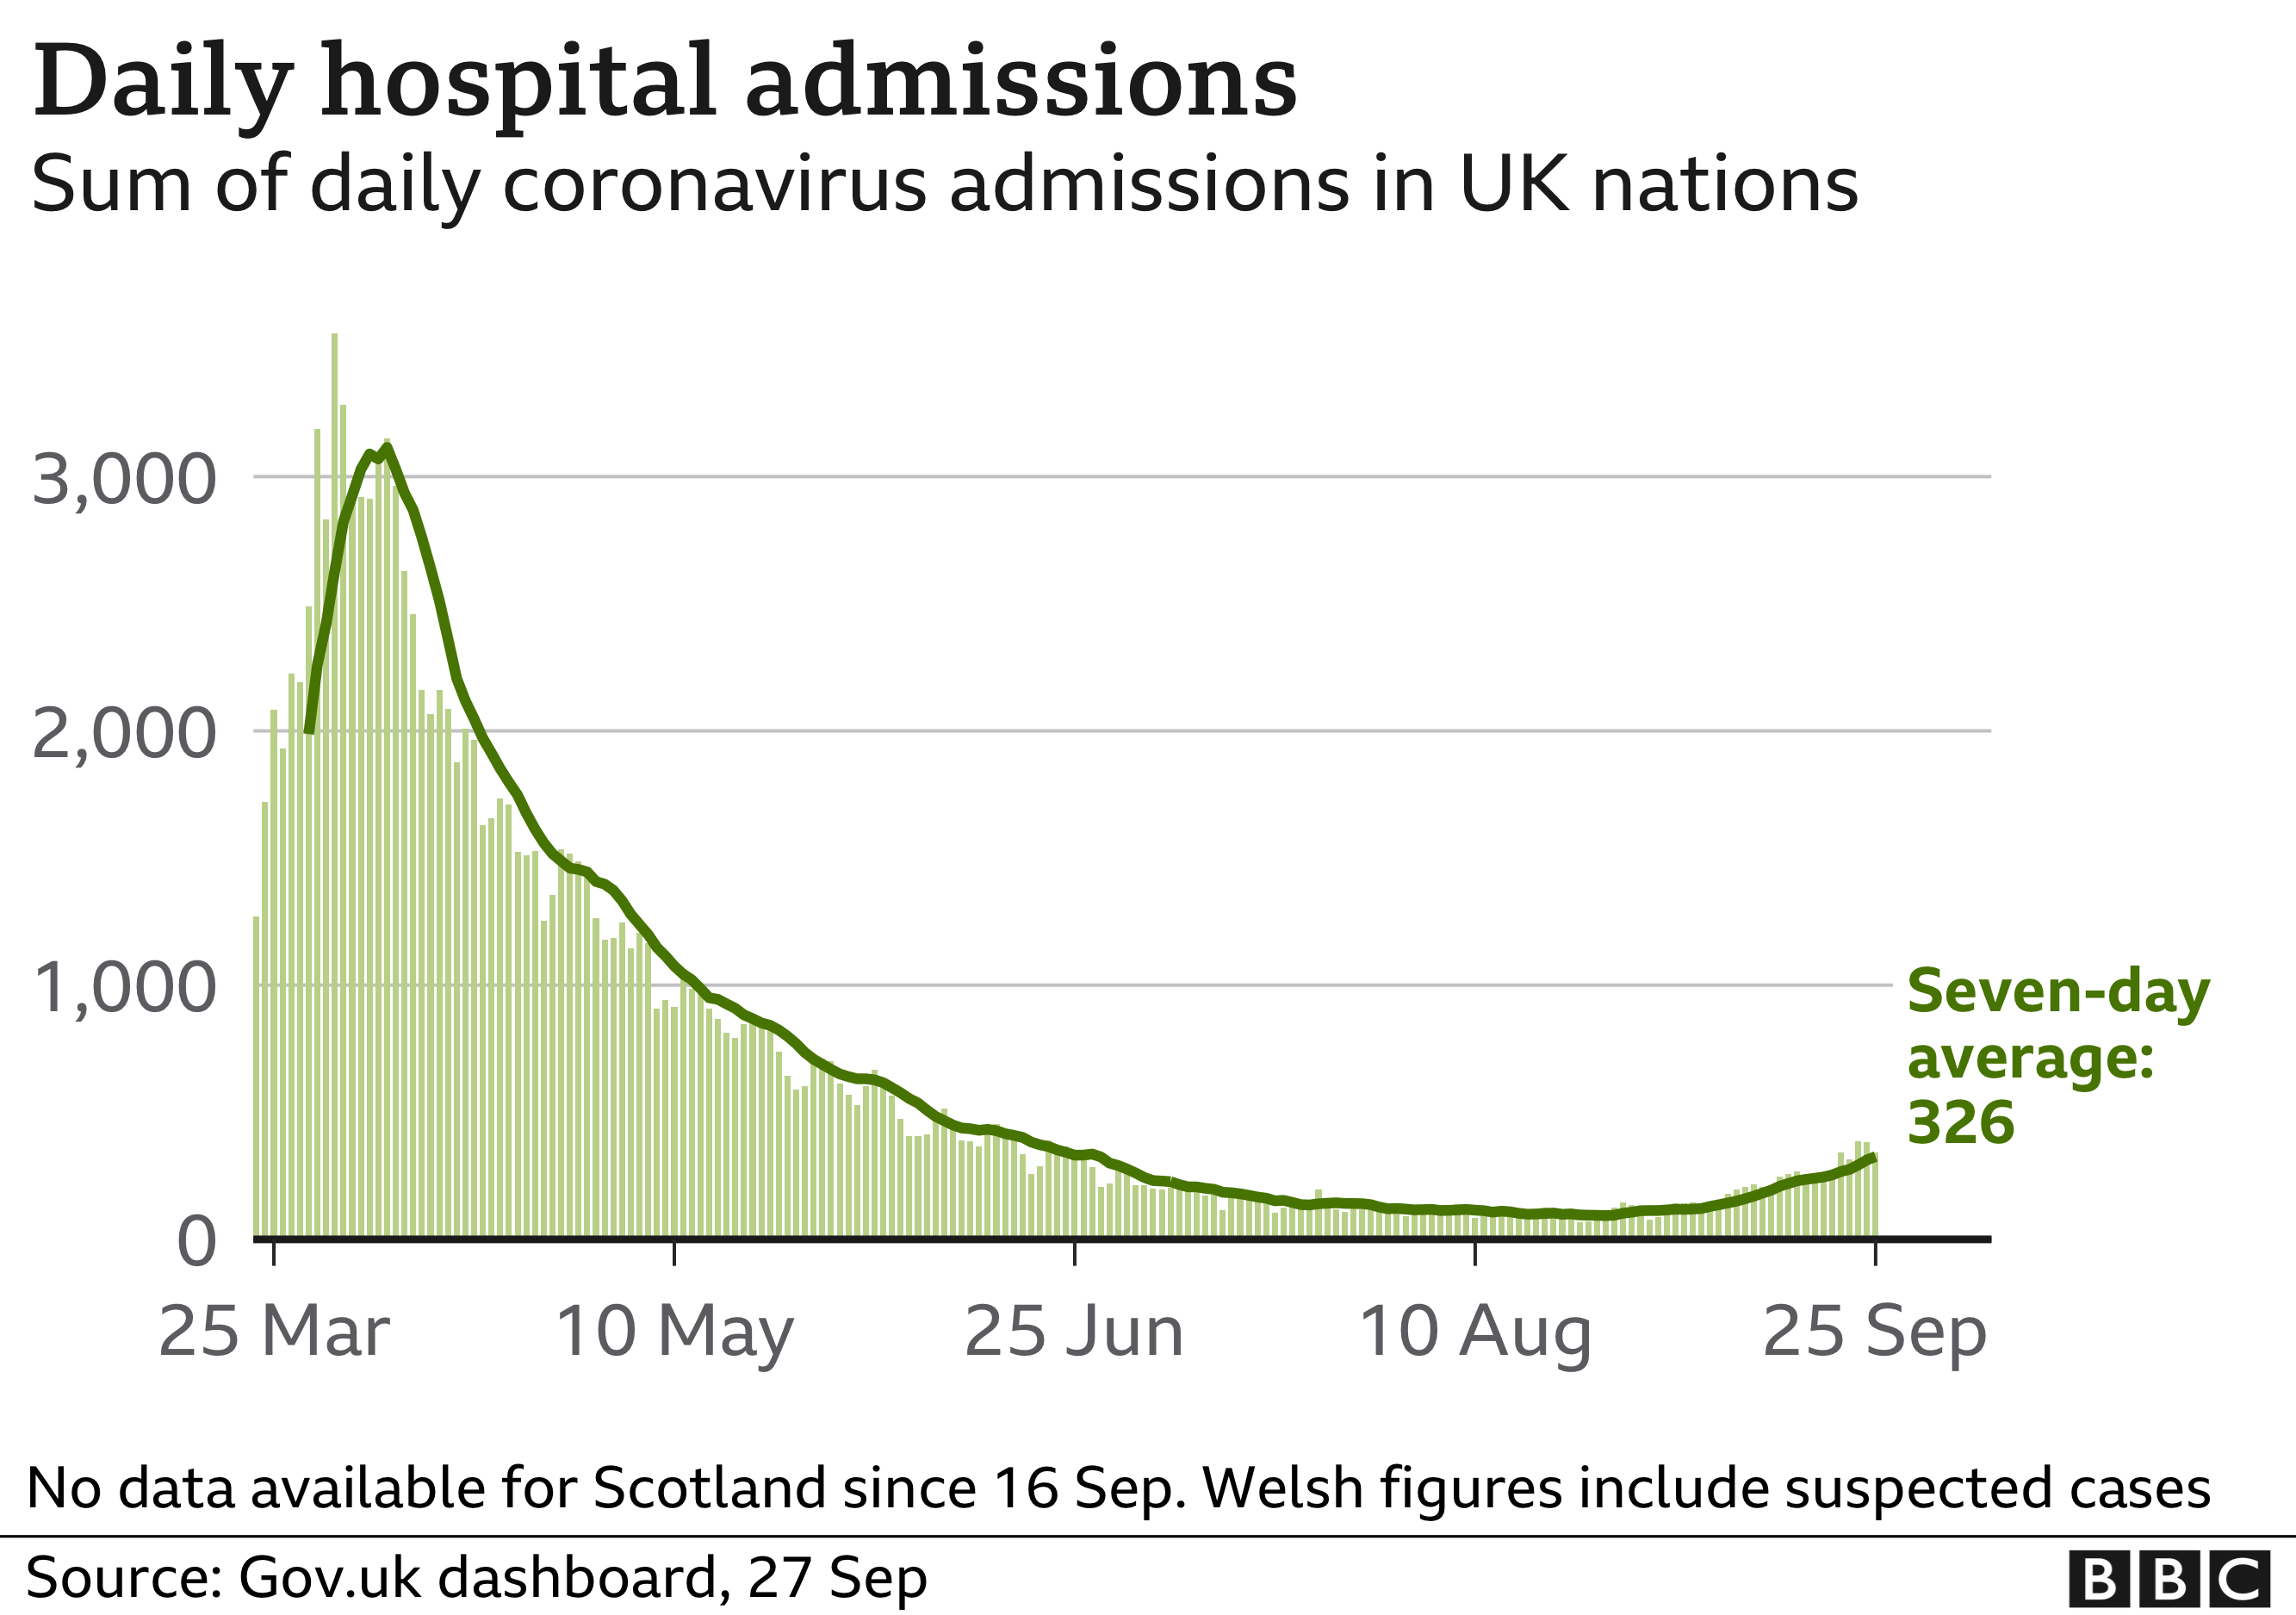 Chart shows hospital admissions are starting to rise again, although from a low level